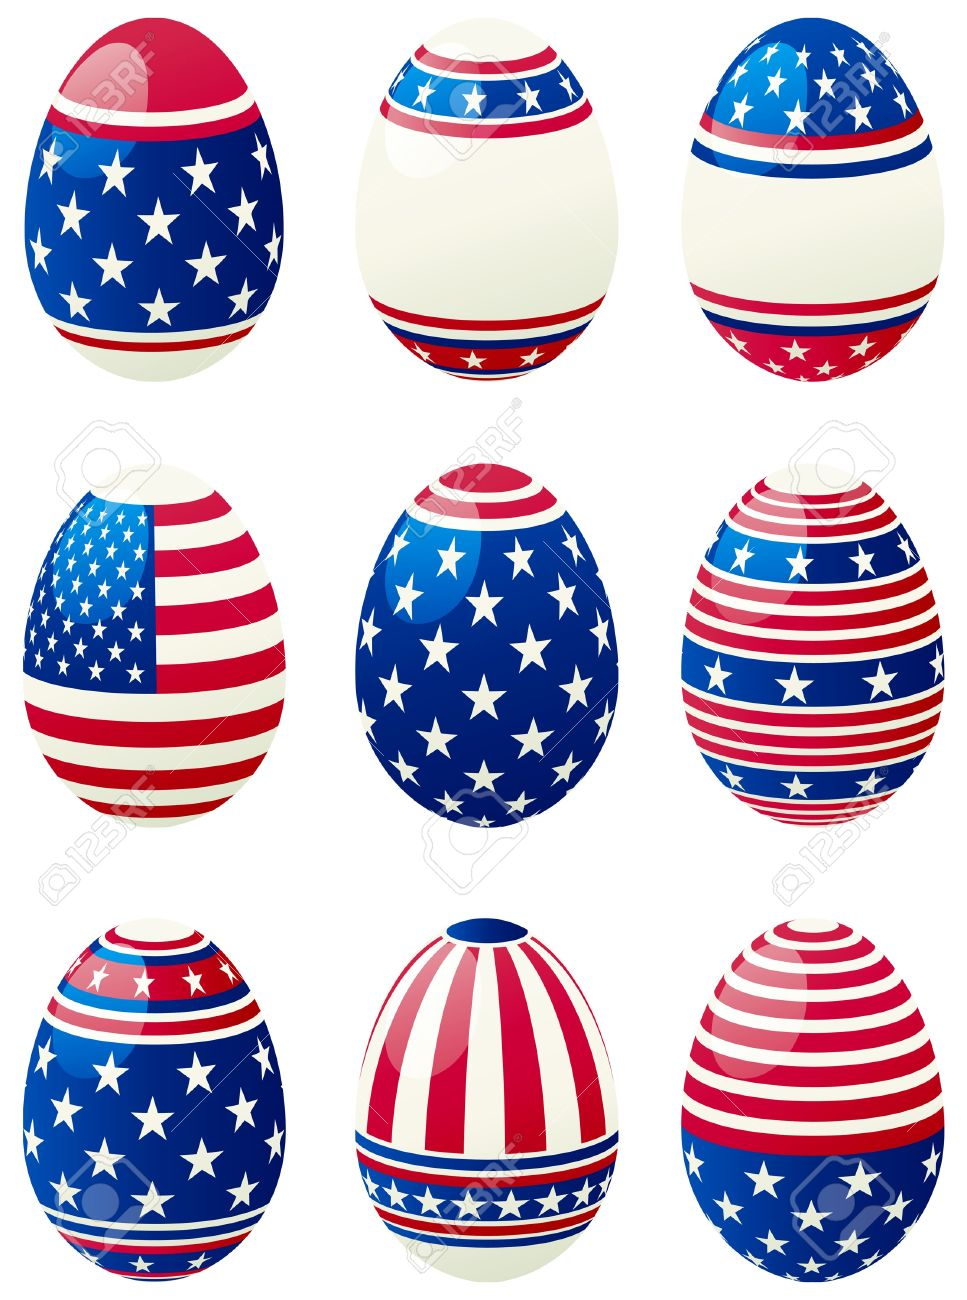 Set of easter eggs with stars and stripes at style of USA flag. Stock Vector - 9270894